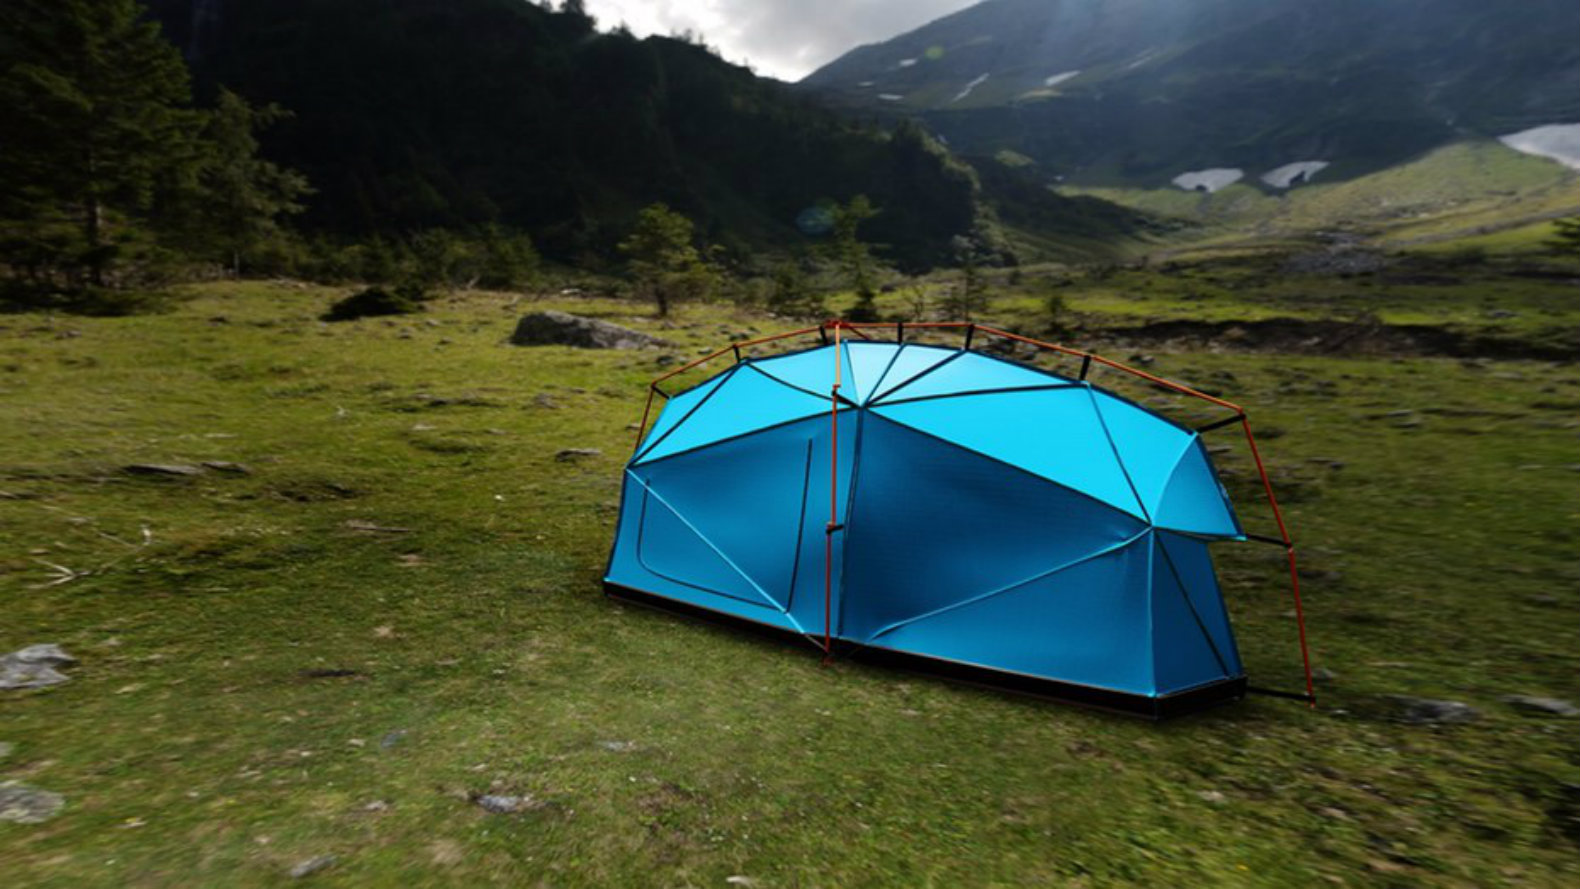 bolt tent kama jania finland designer bolt lightning tent lightning proof tent & Lightning-proof Bolt tents will keep you safe in a storm ...